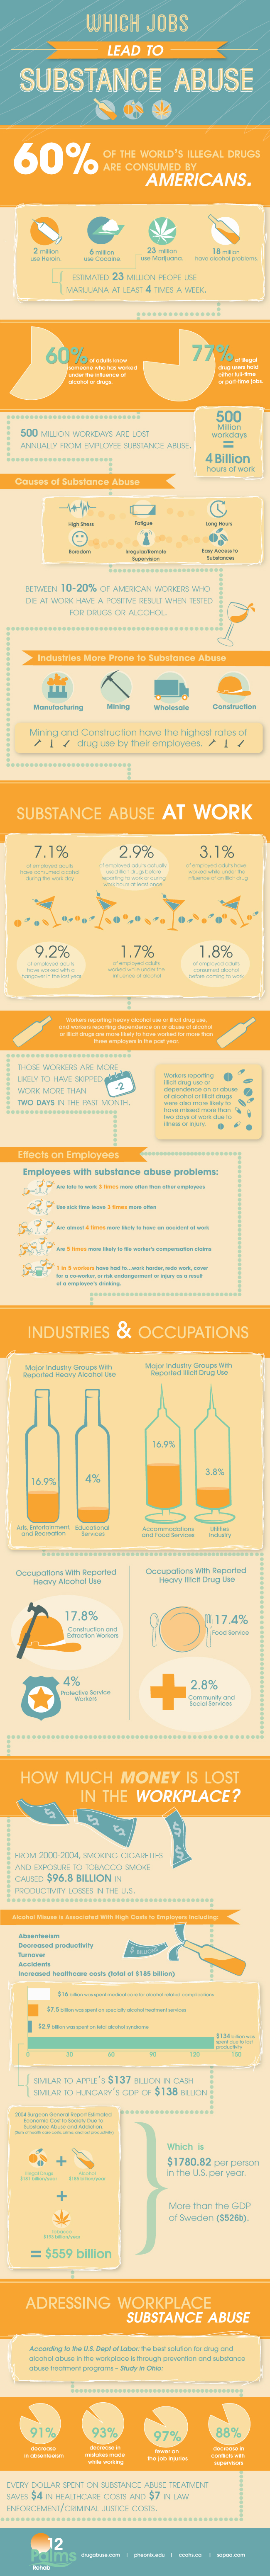 Jobs that leads to substance abuse infographic